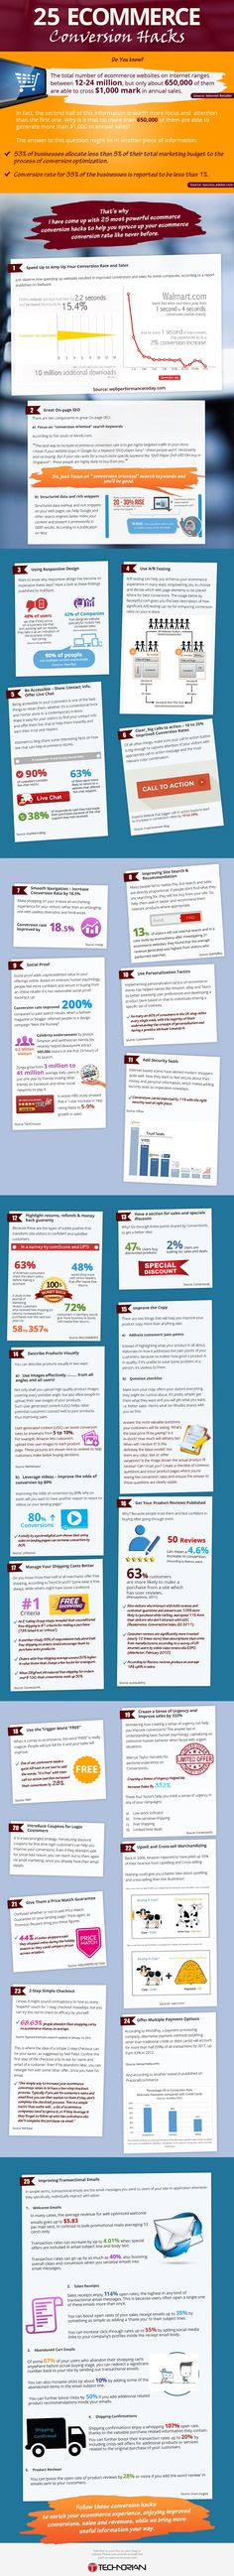 25 Ways to Improve Your Online Sales Process [Infographic] - Love a good success story? Learn how I went from zero to 1 million in sales in 5 months with an e-commerce store. Internet Marketing, Online Marketing, Media Marketing, Content Marketing, Digital Marketing, Process Infographic, Infographics, Small Business Management, Management Tips